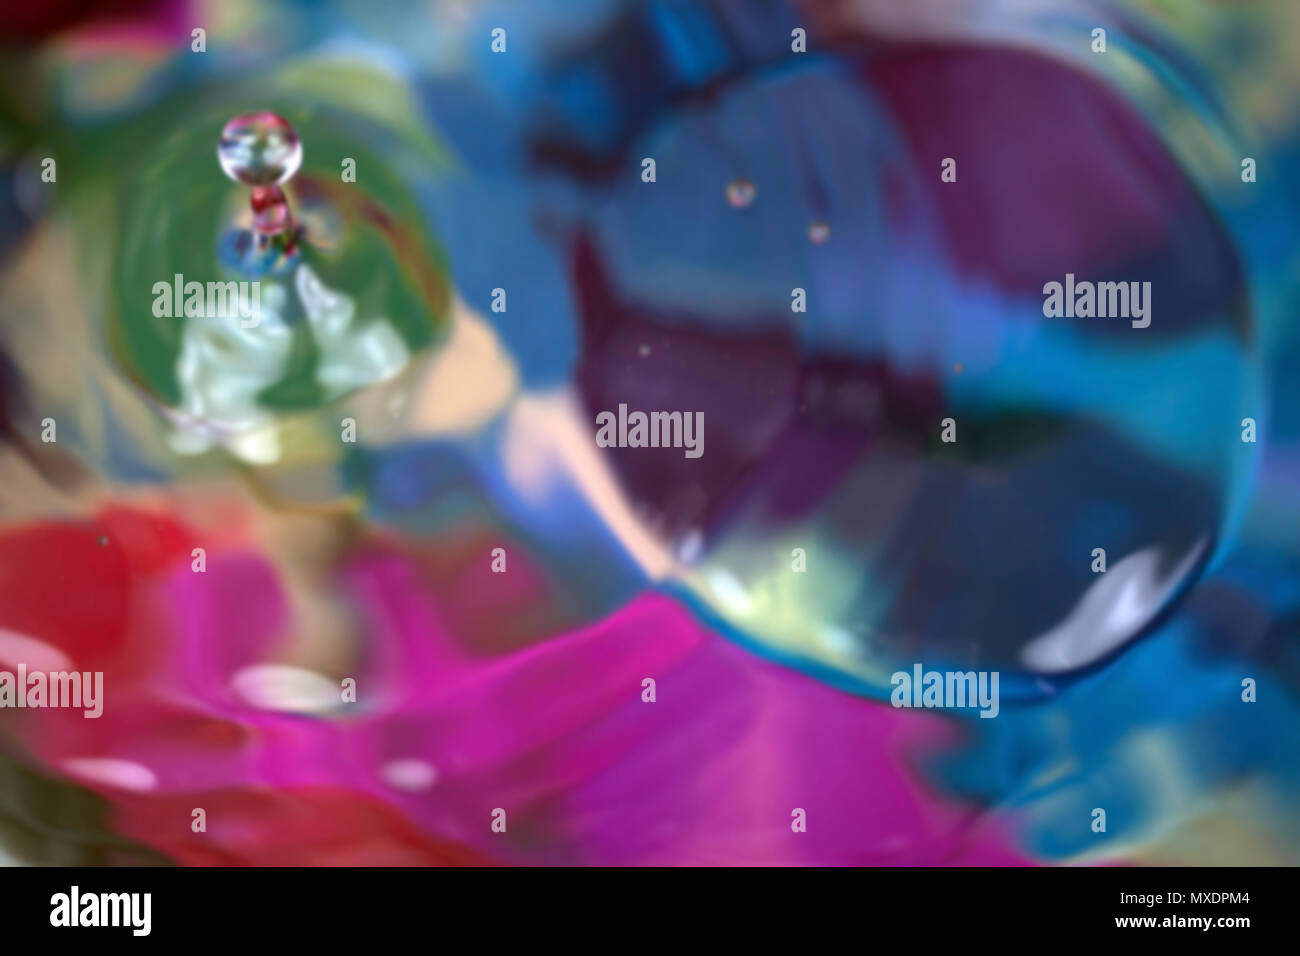 Abstract droplet , colorful color background - Stock Image